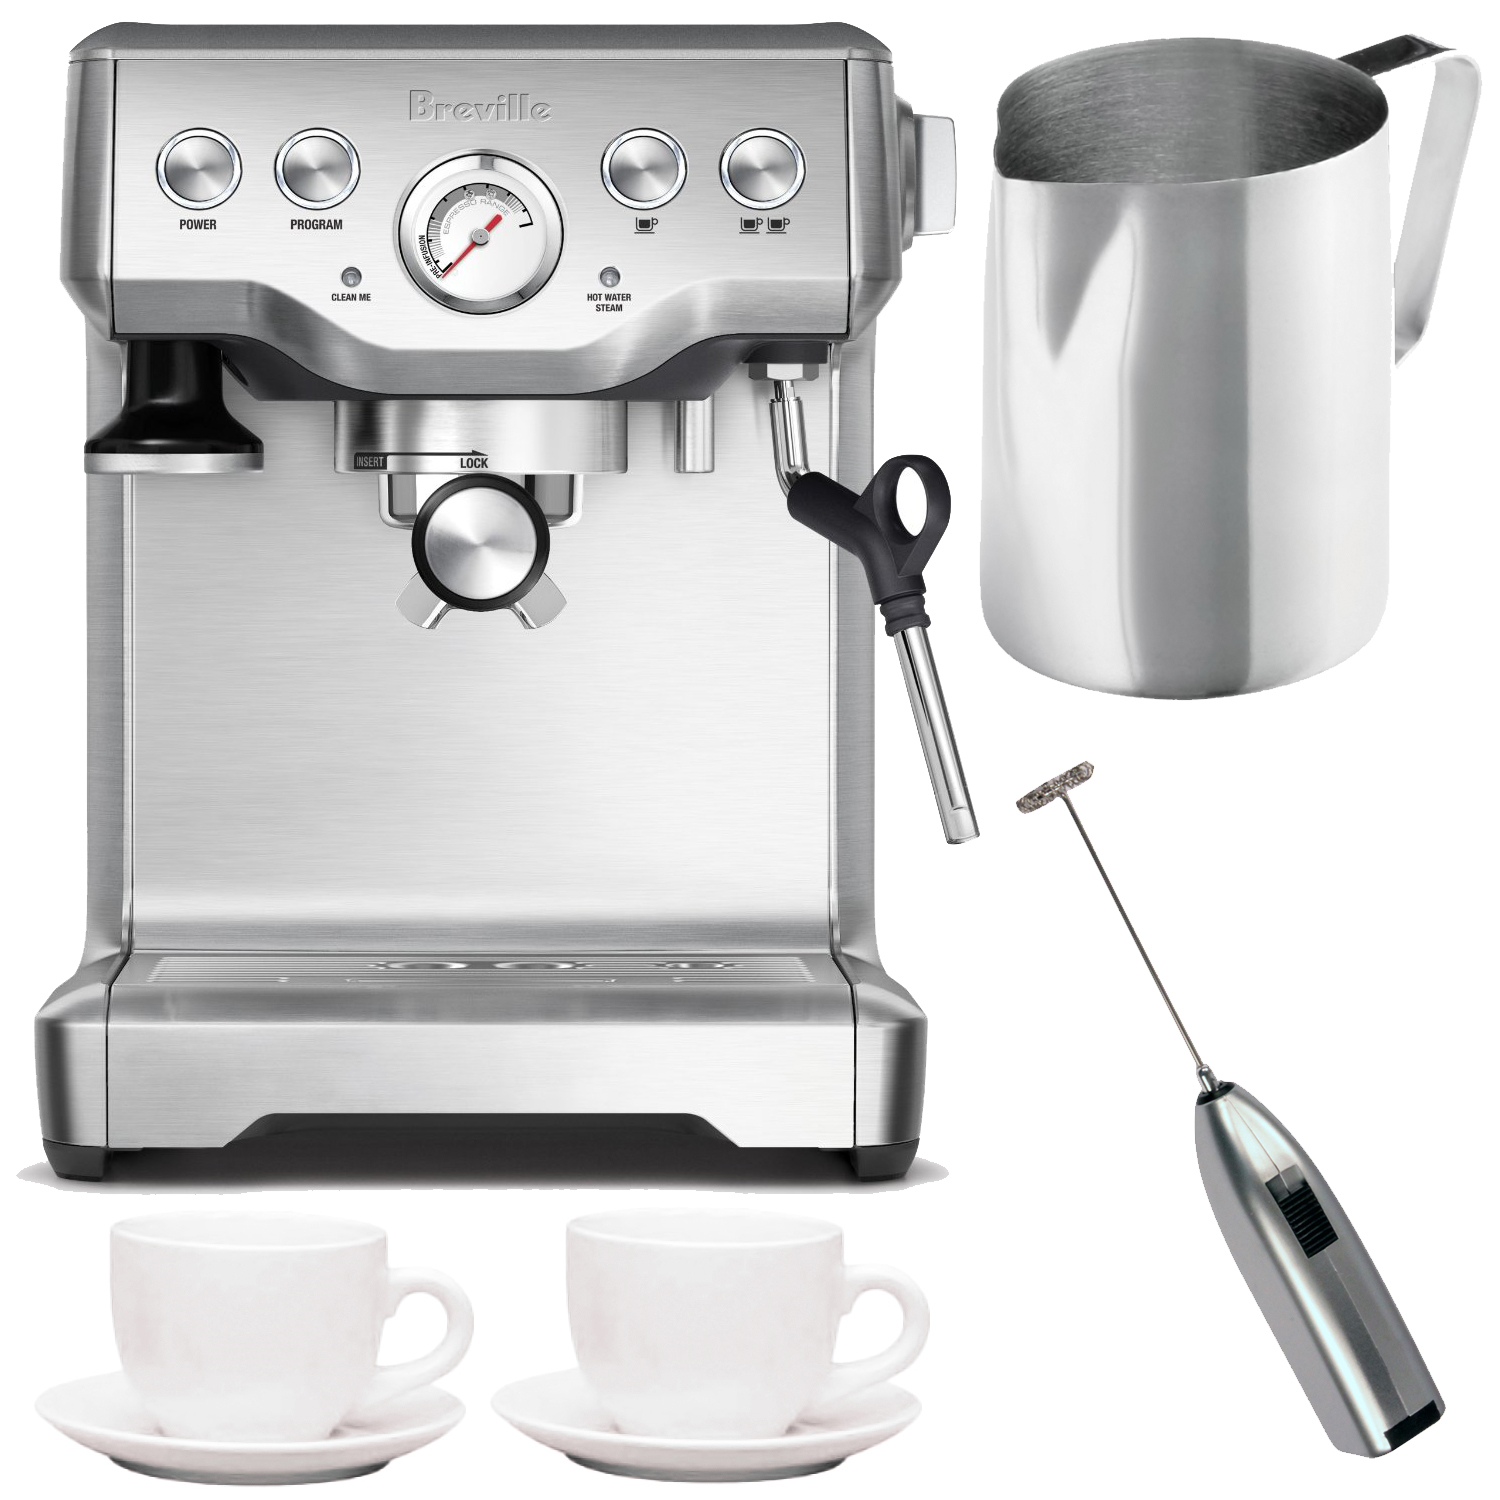 Breville BES840XL Infuser Espresso Machine + Frothing Pitcher, Cups and Frother by Breville